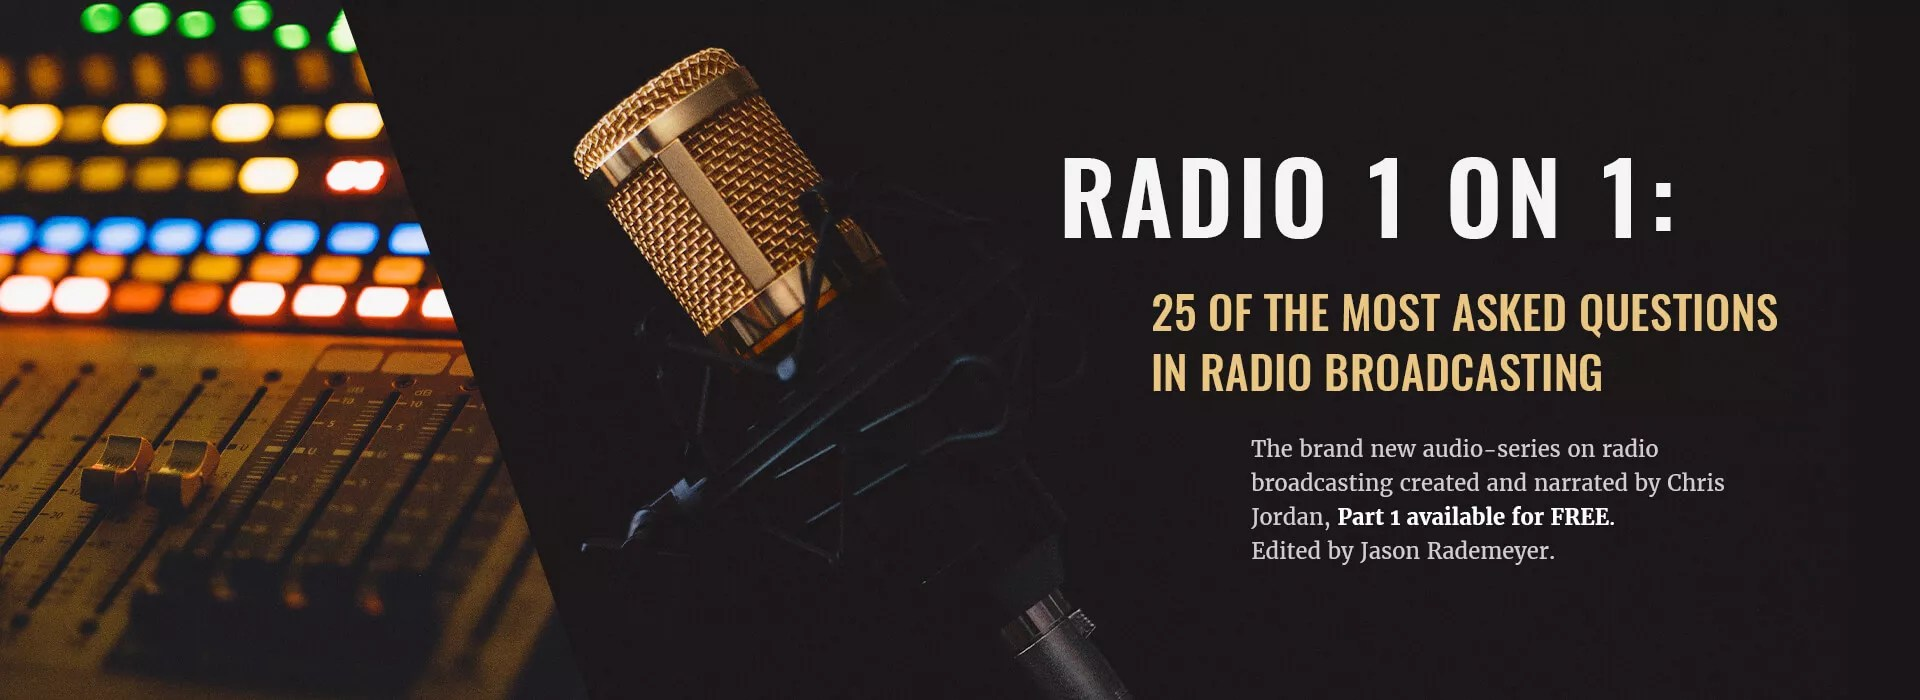 Radio 1 on 1 : 25 of the Most Asked Questions in Radio Broadcasting